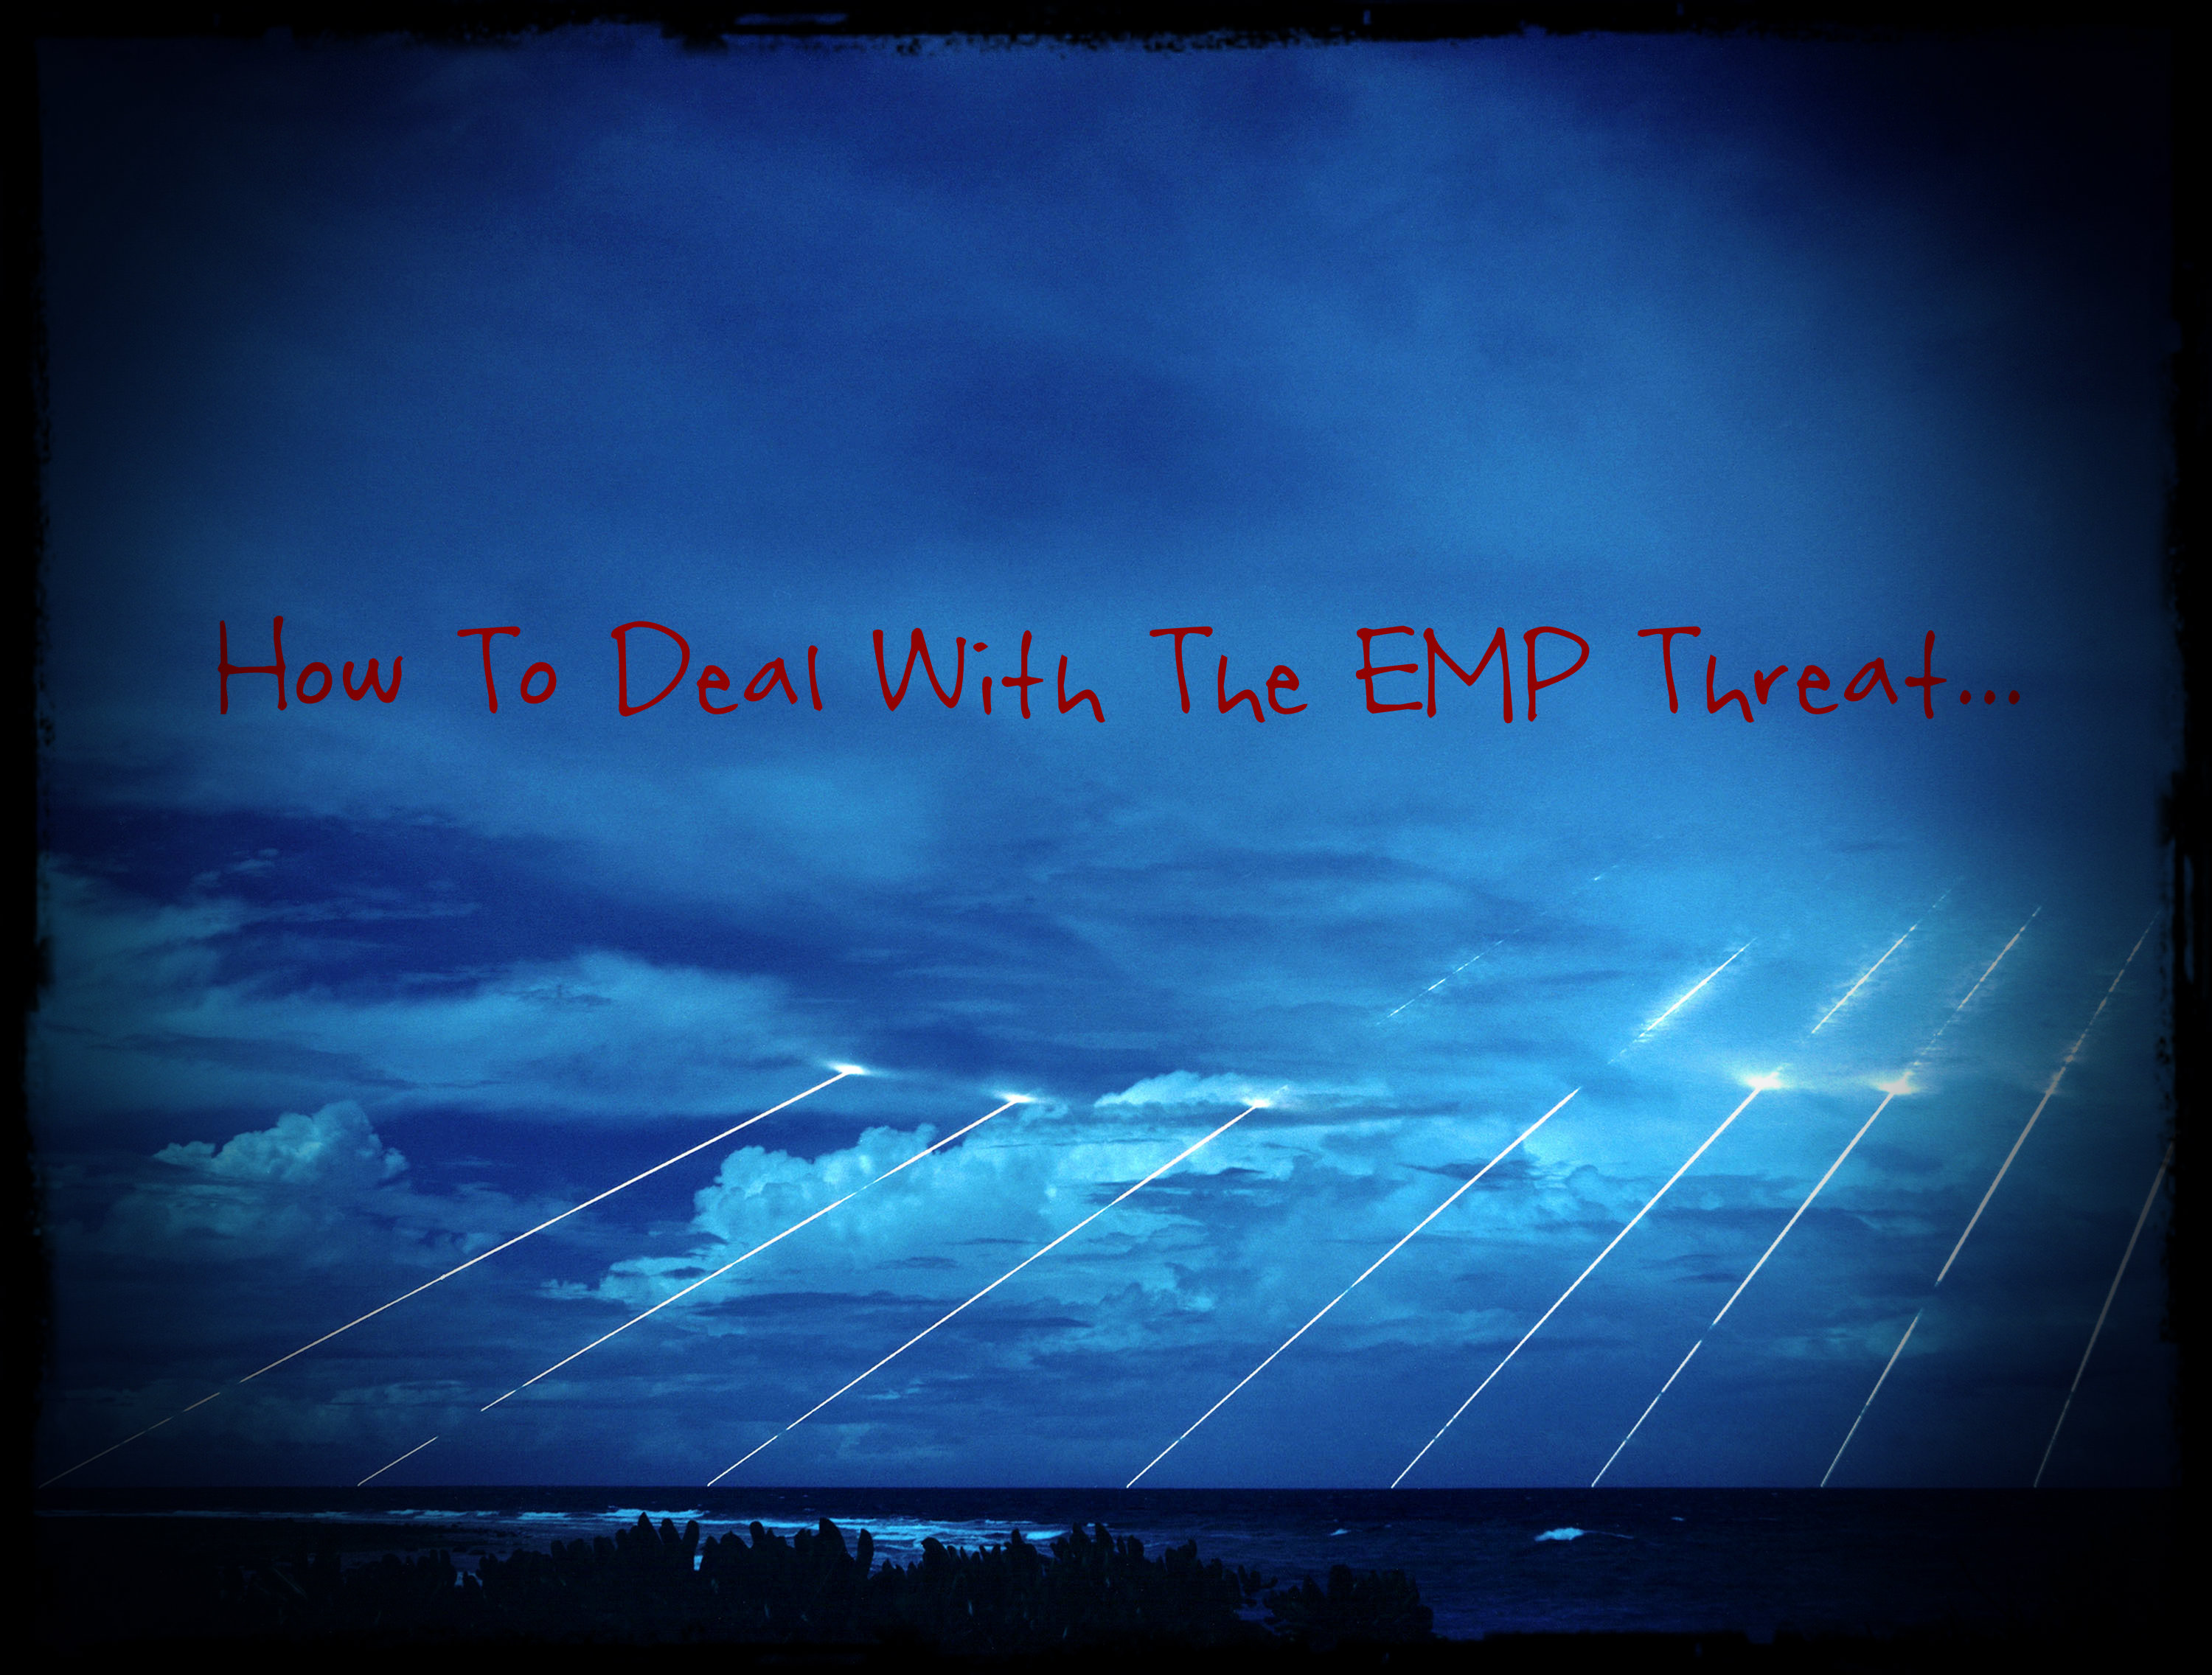 EMP Protection: How To Survive An EMP Attack